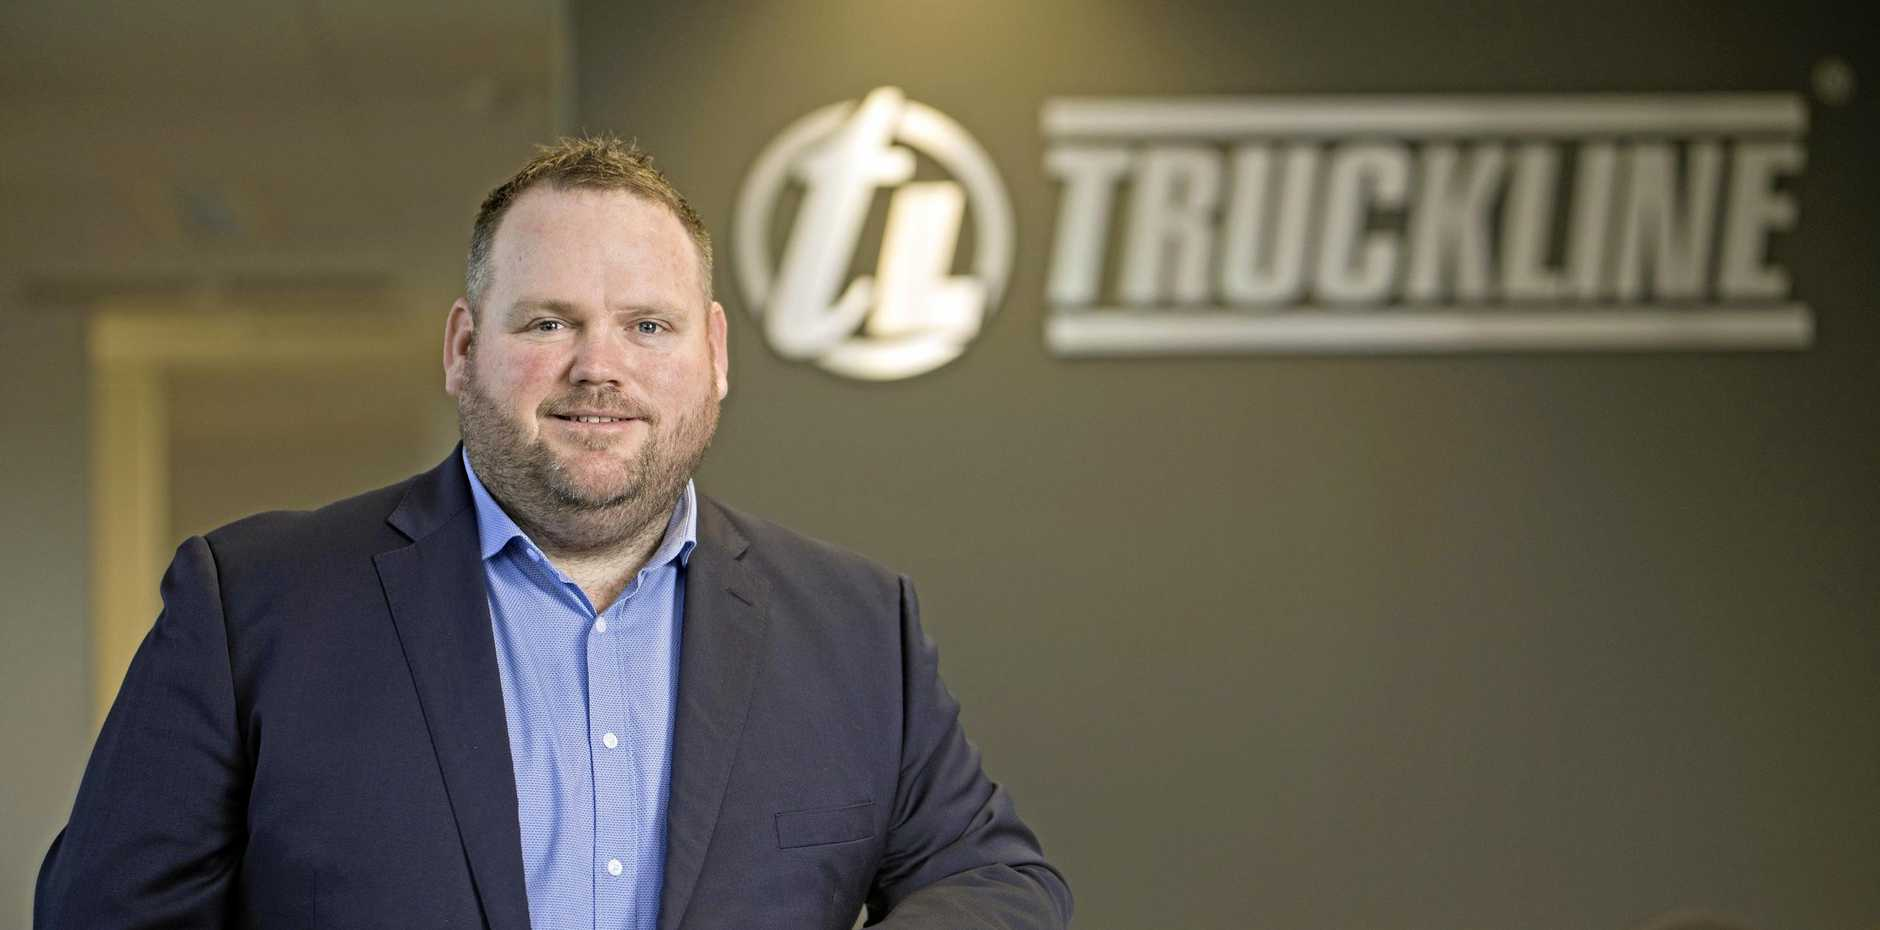 FUTURE BRIGHT: Truckline general manager Martin Hinkley is looking forward to the opportunities with Bapcor.